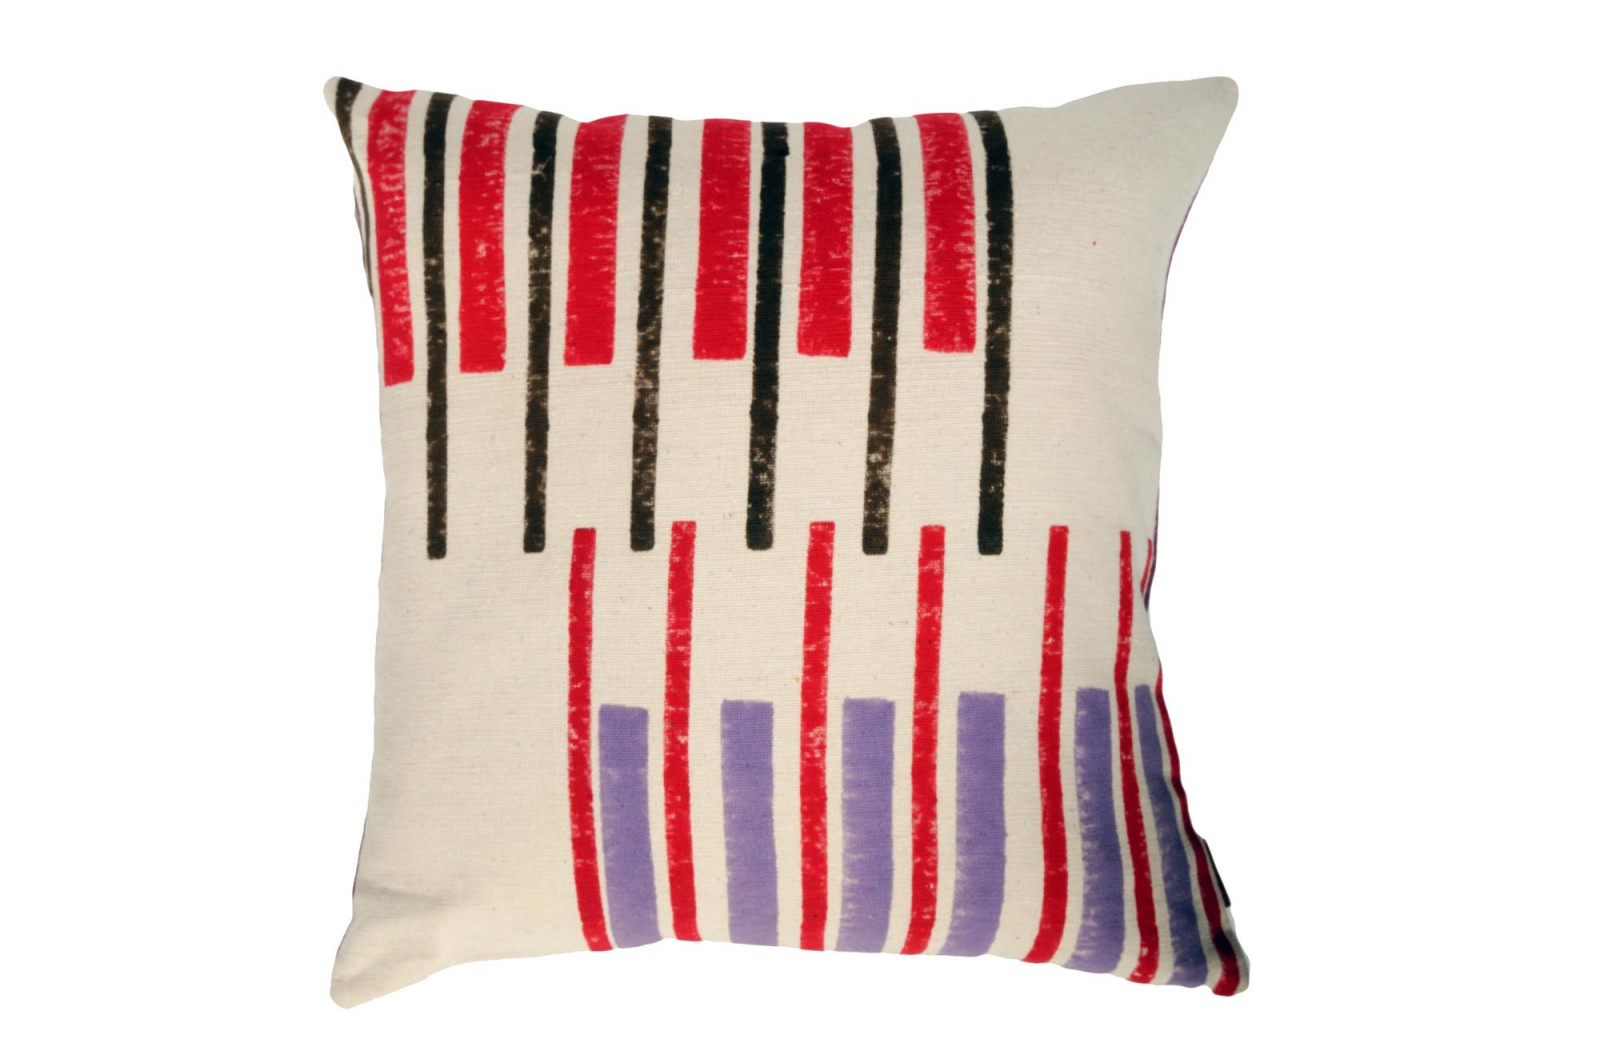 COUSSIN 50x50 CHANDIGARH / grenadine stripes